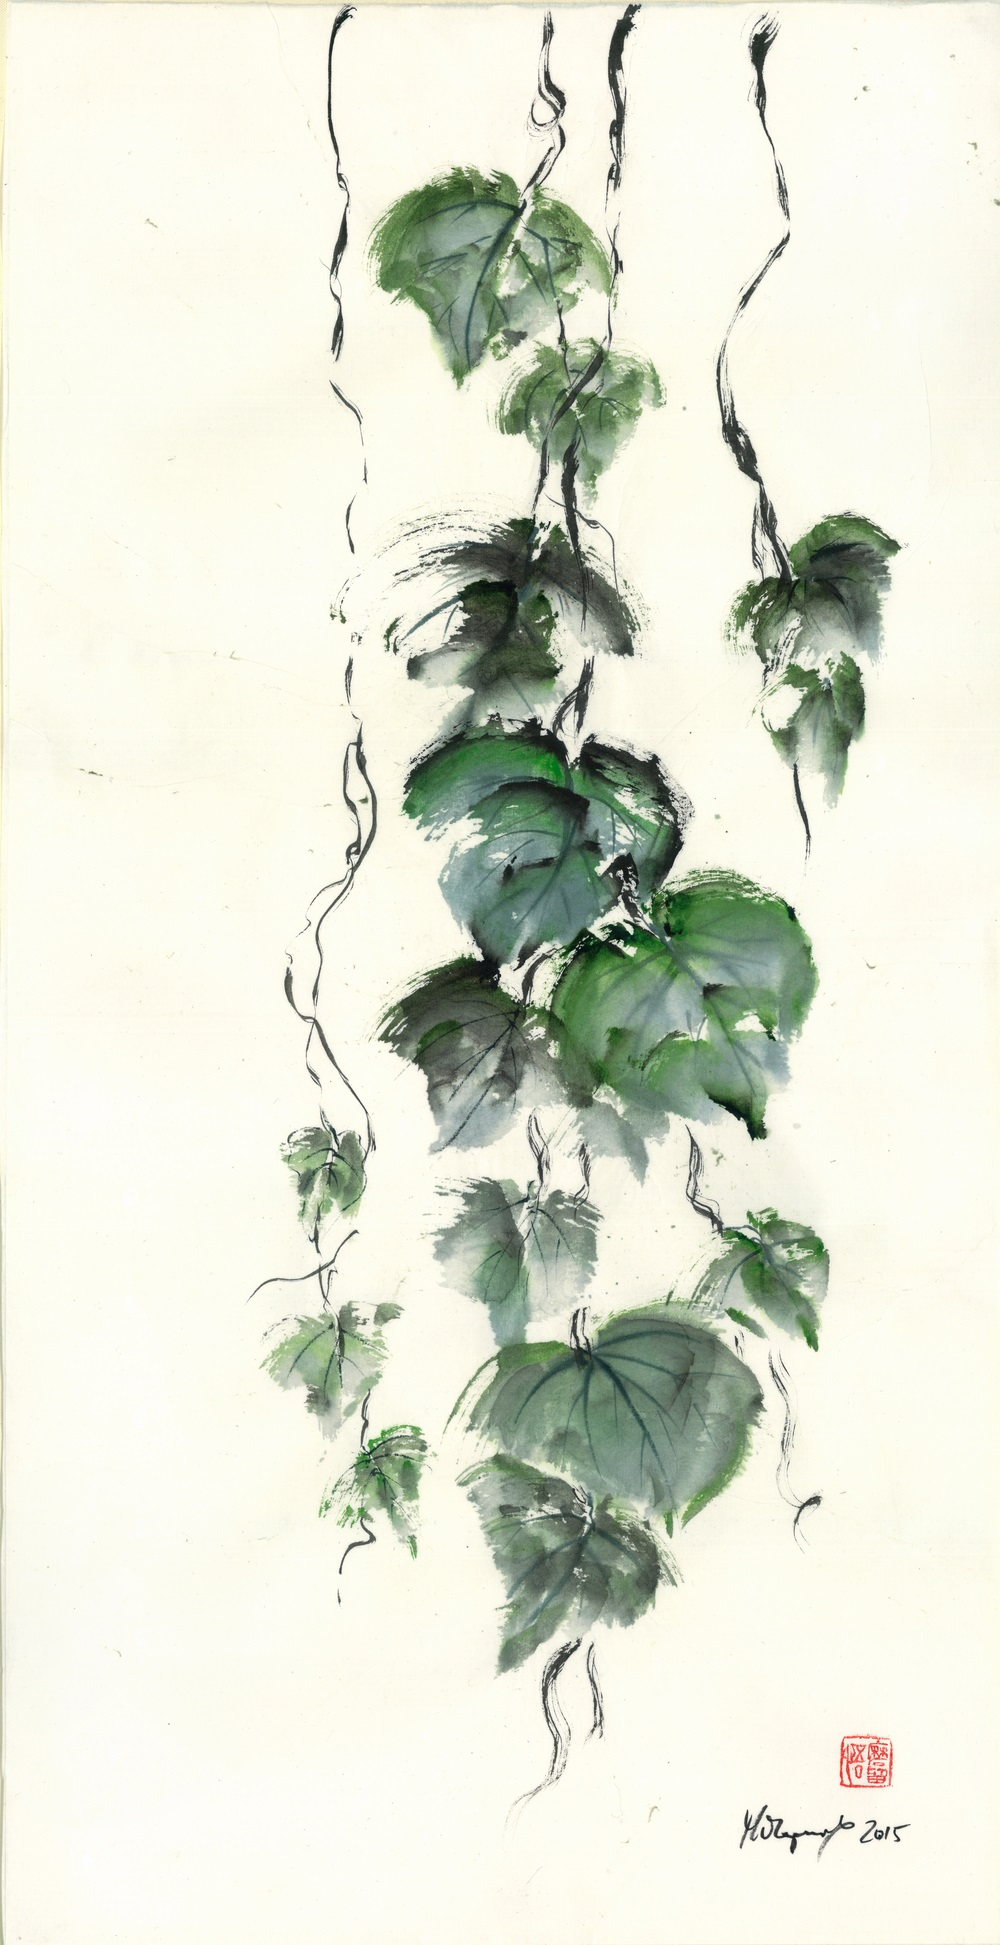 Malgorzata Olejniczak, Grape leaves, 2015, hanging scroll, ink and antique colour on Japanese paper, 65 x 33.5 cm, including silk mounting 119 x 45 cm (detail)